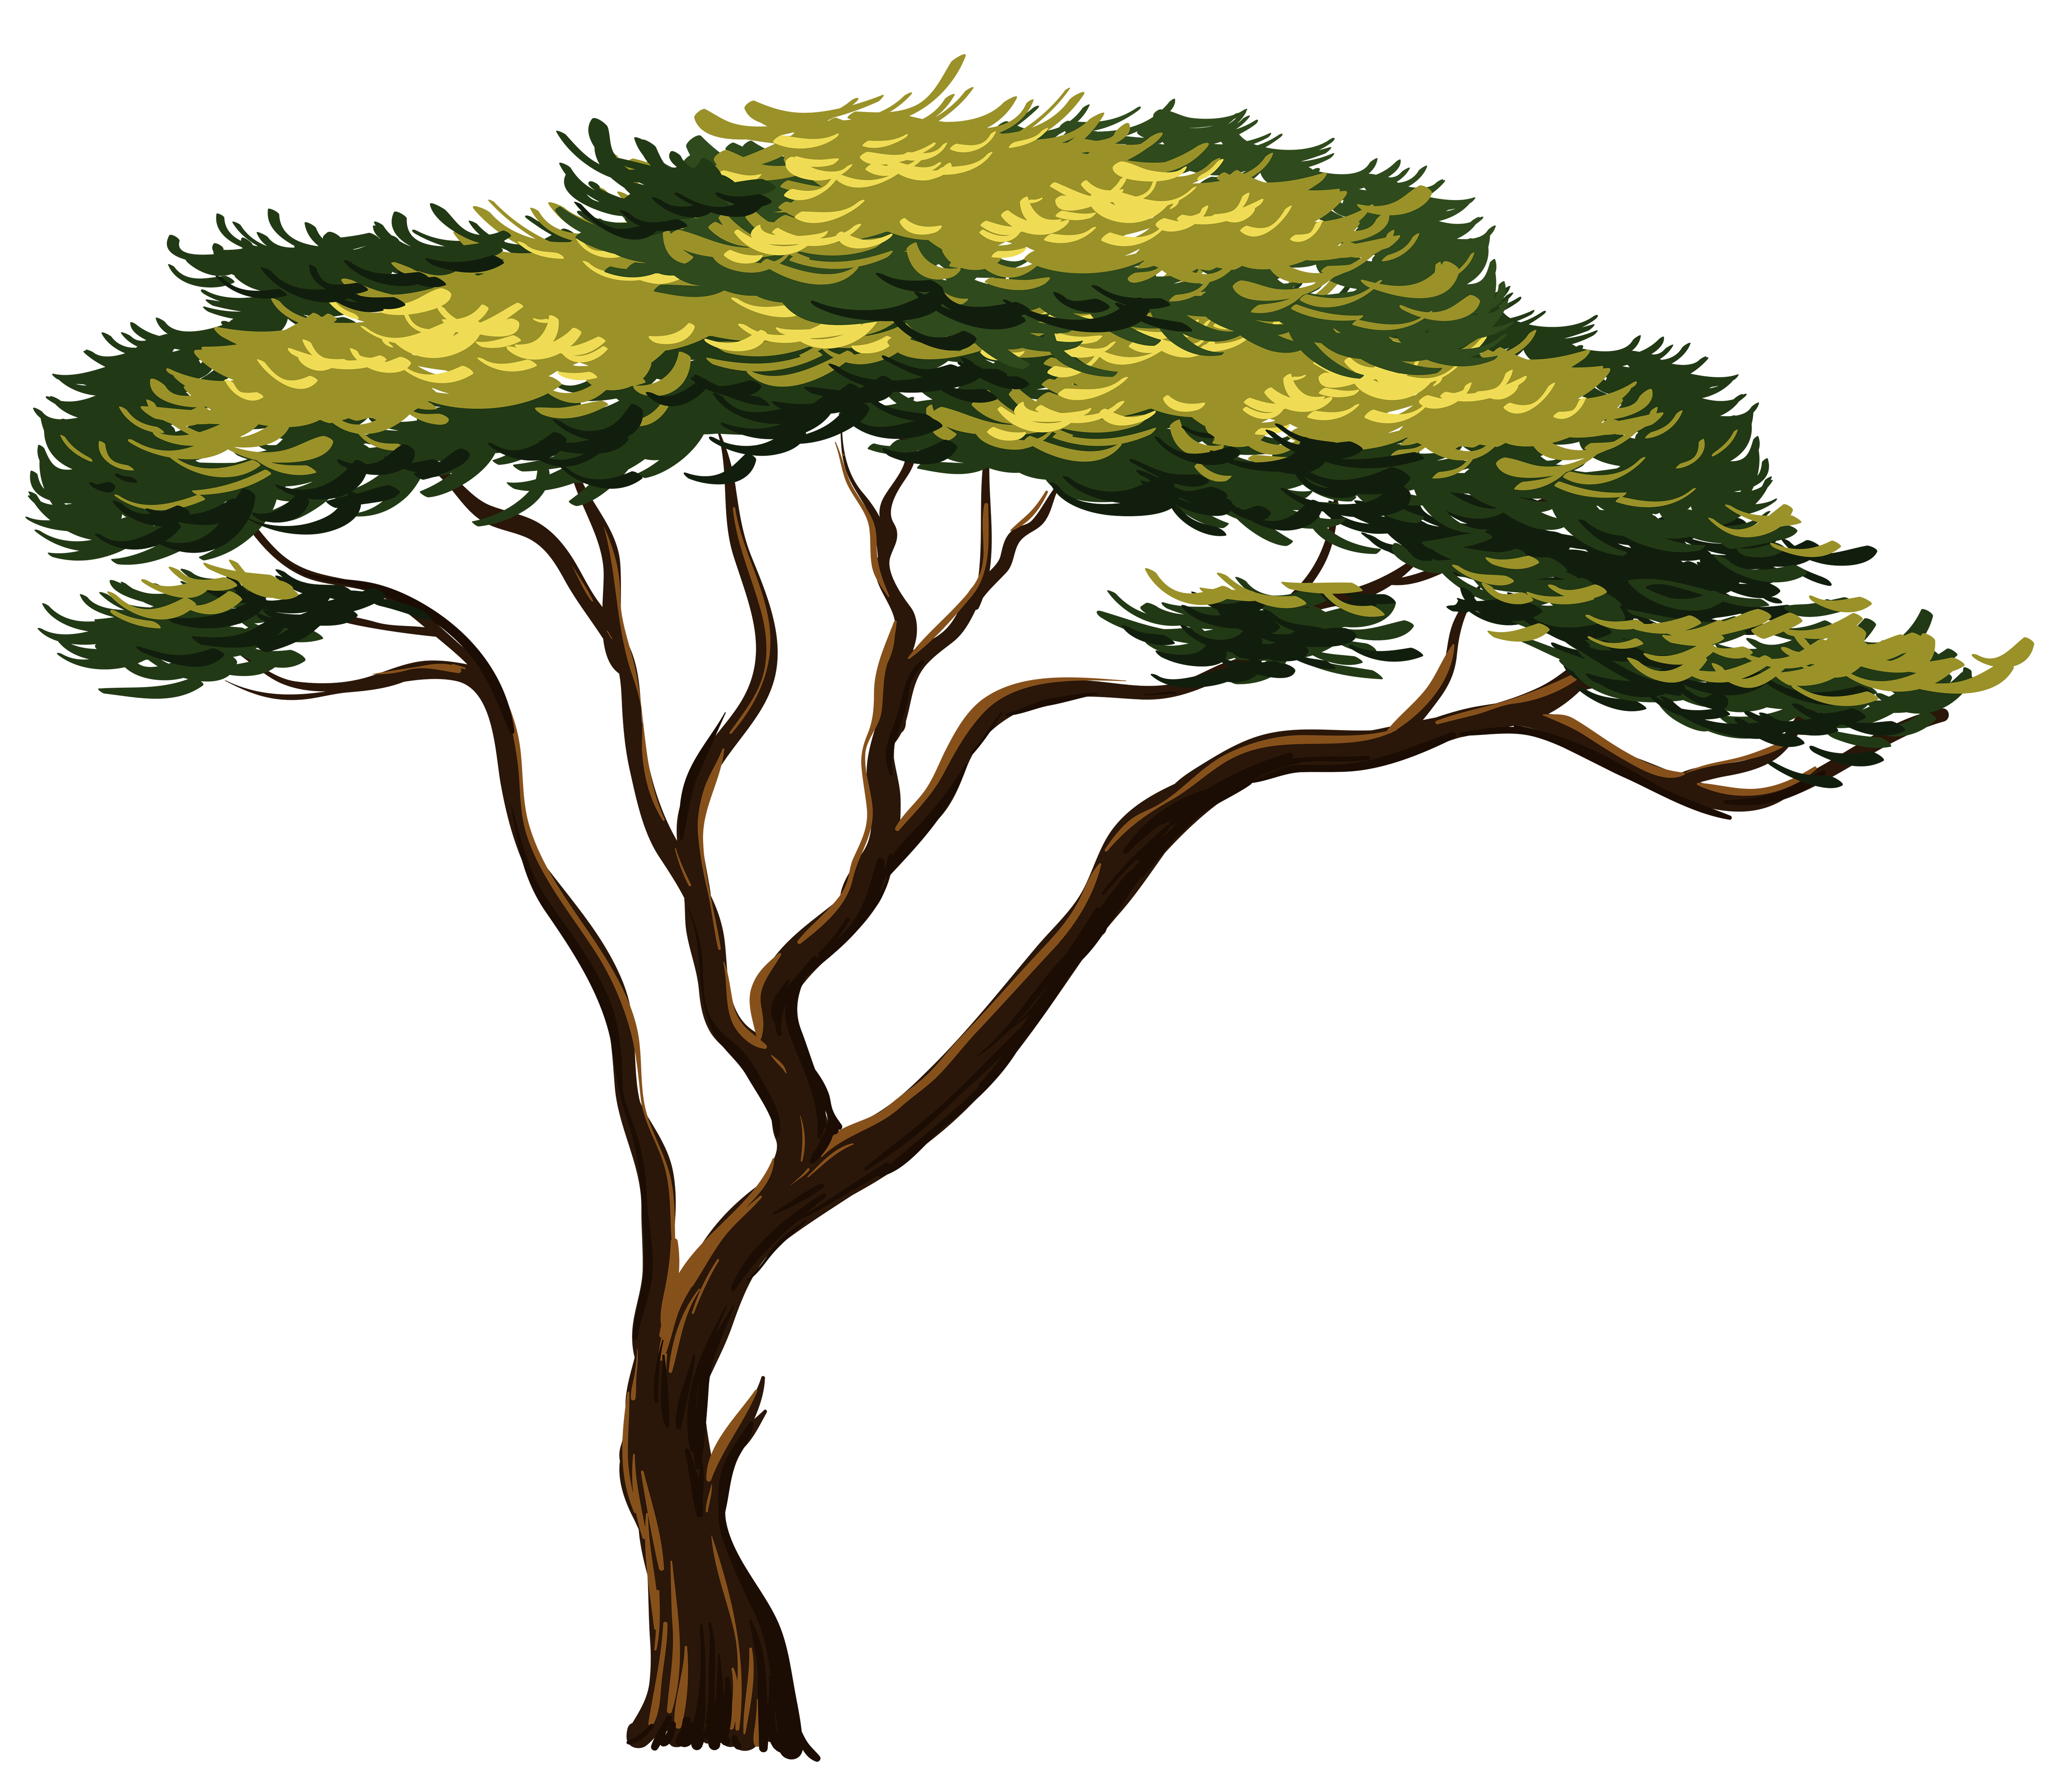 African tree clipart.